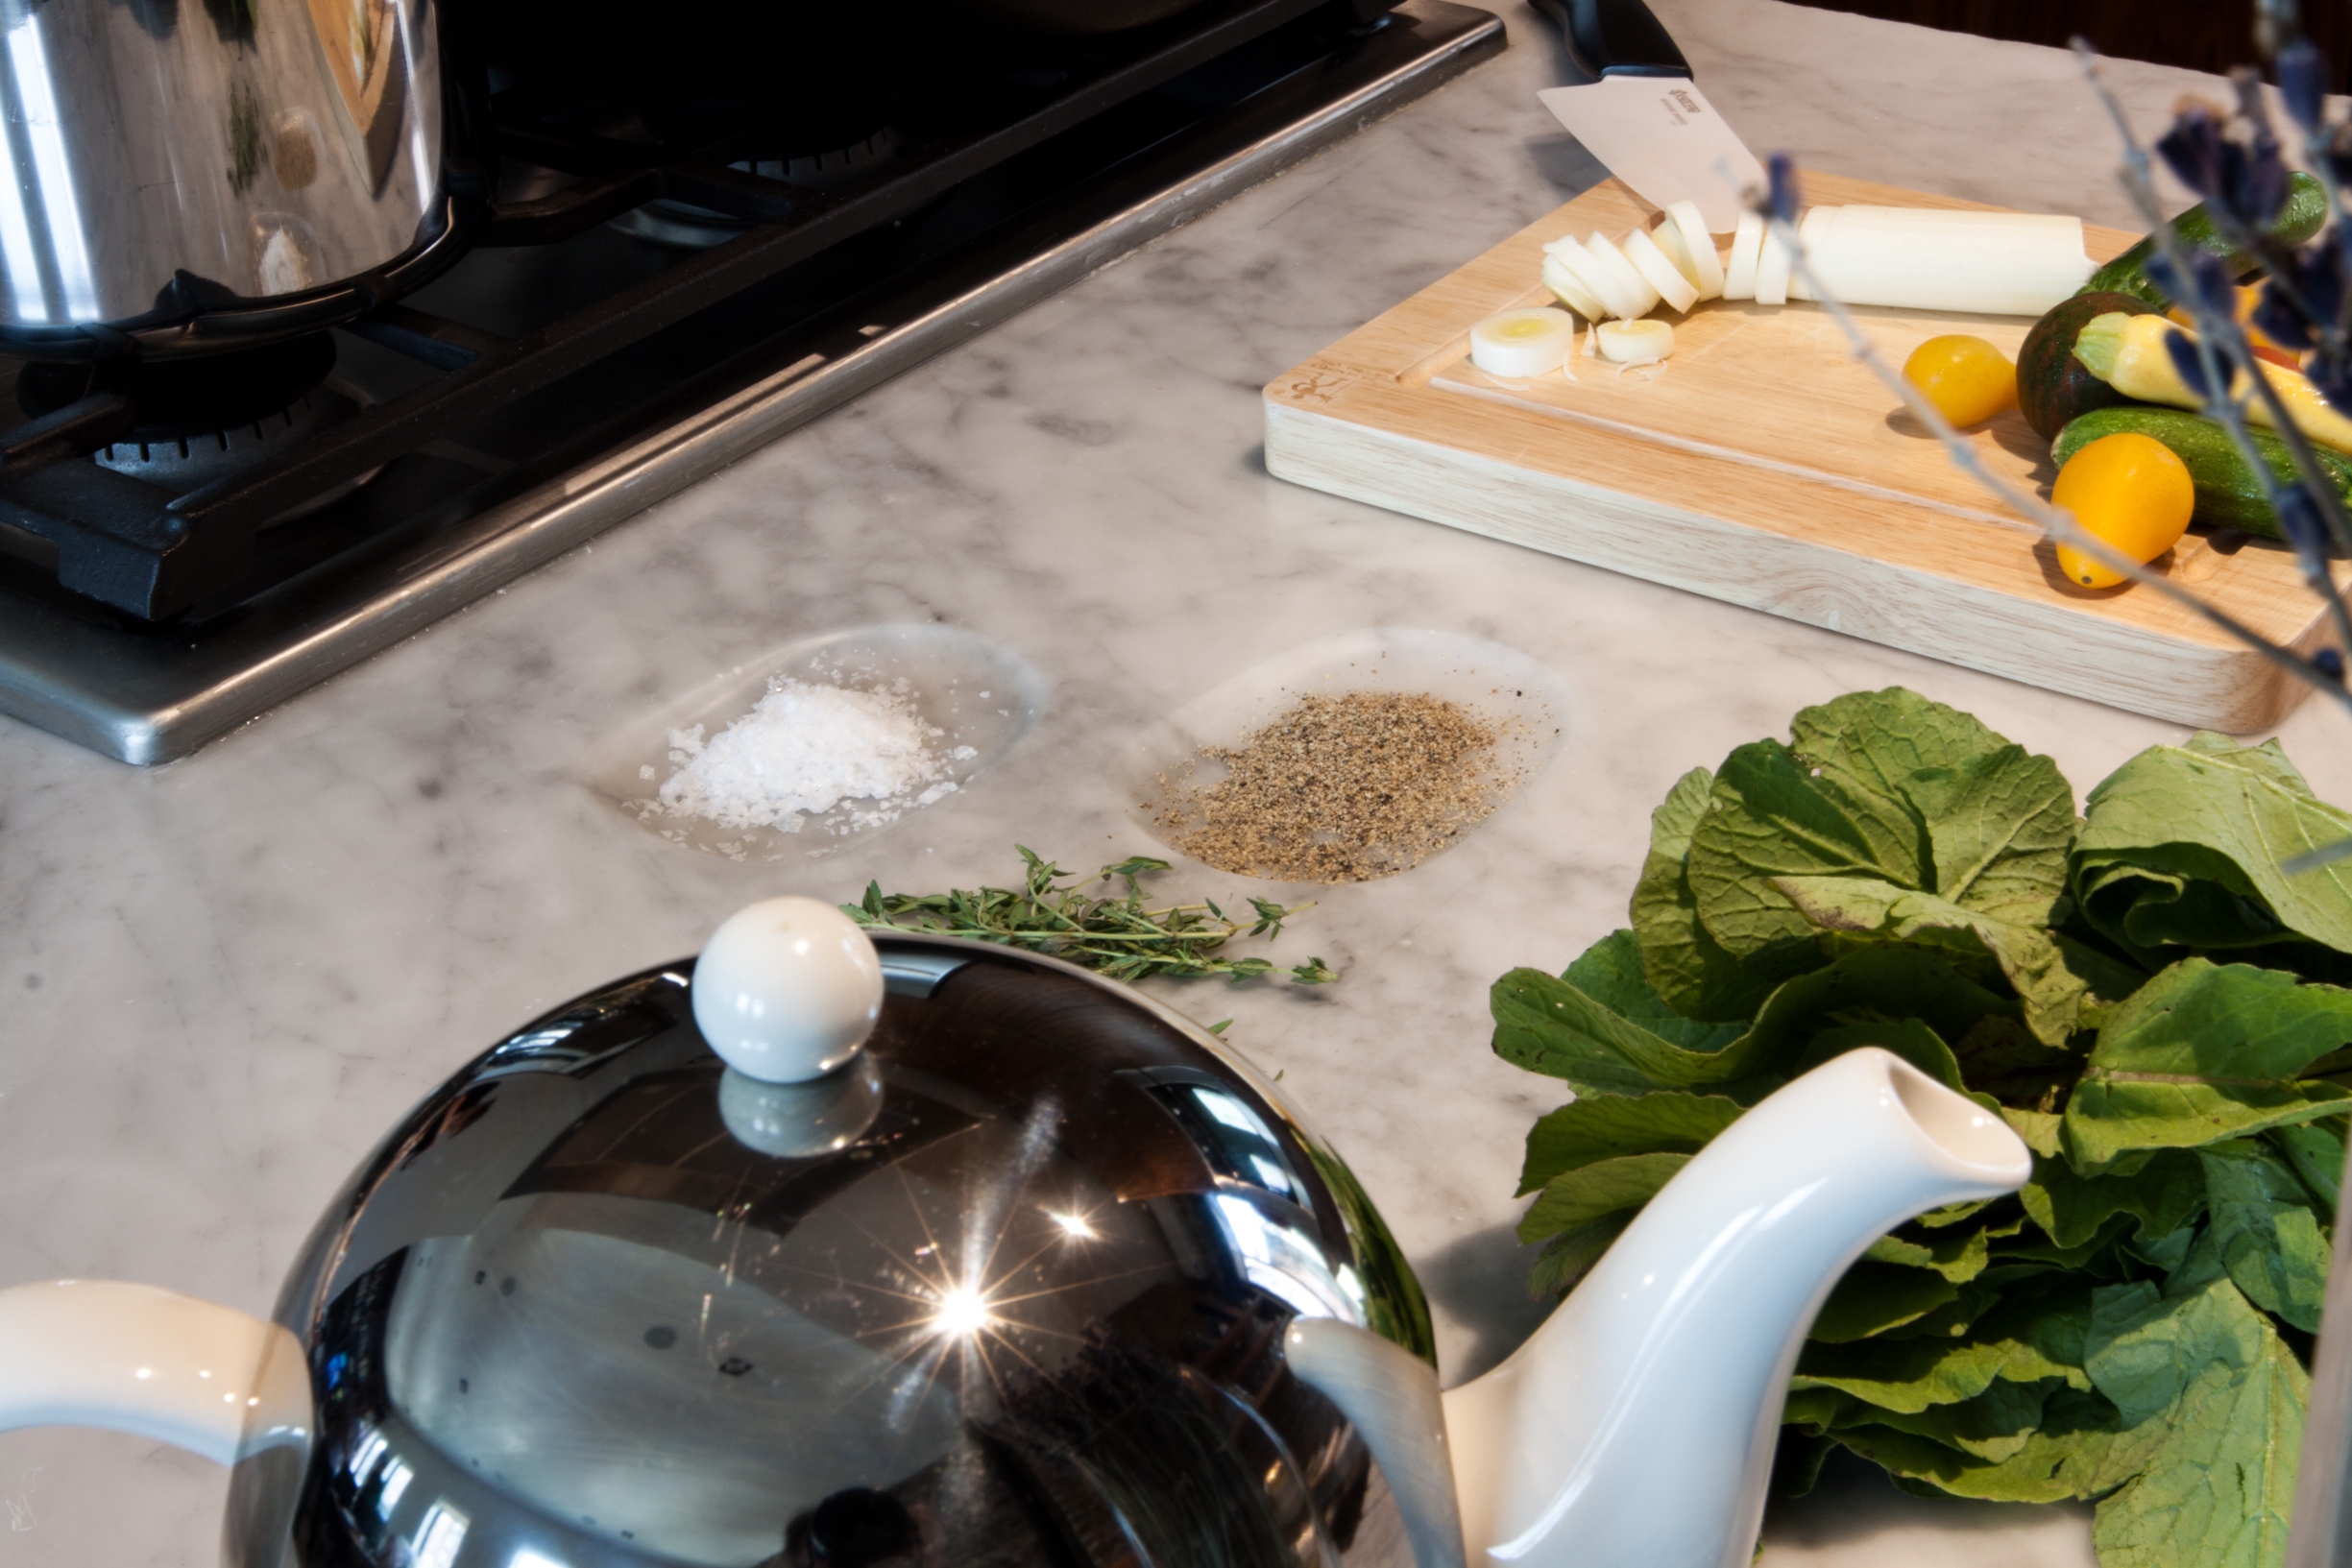 Marble countertop with custom salt and pepper